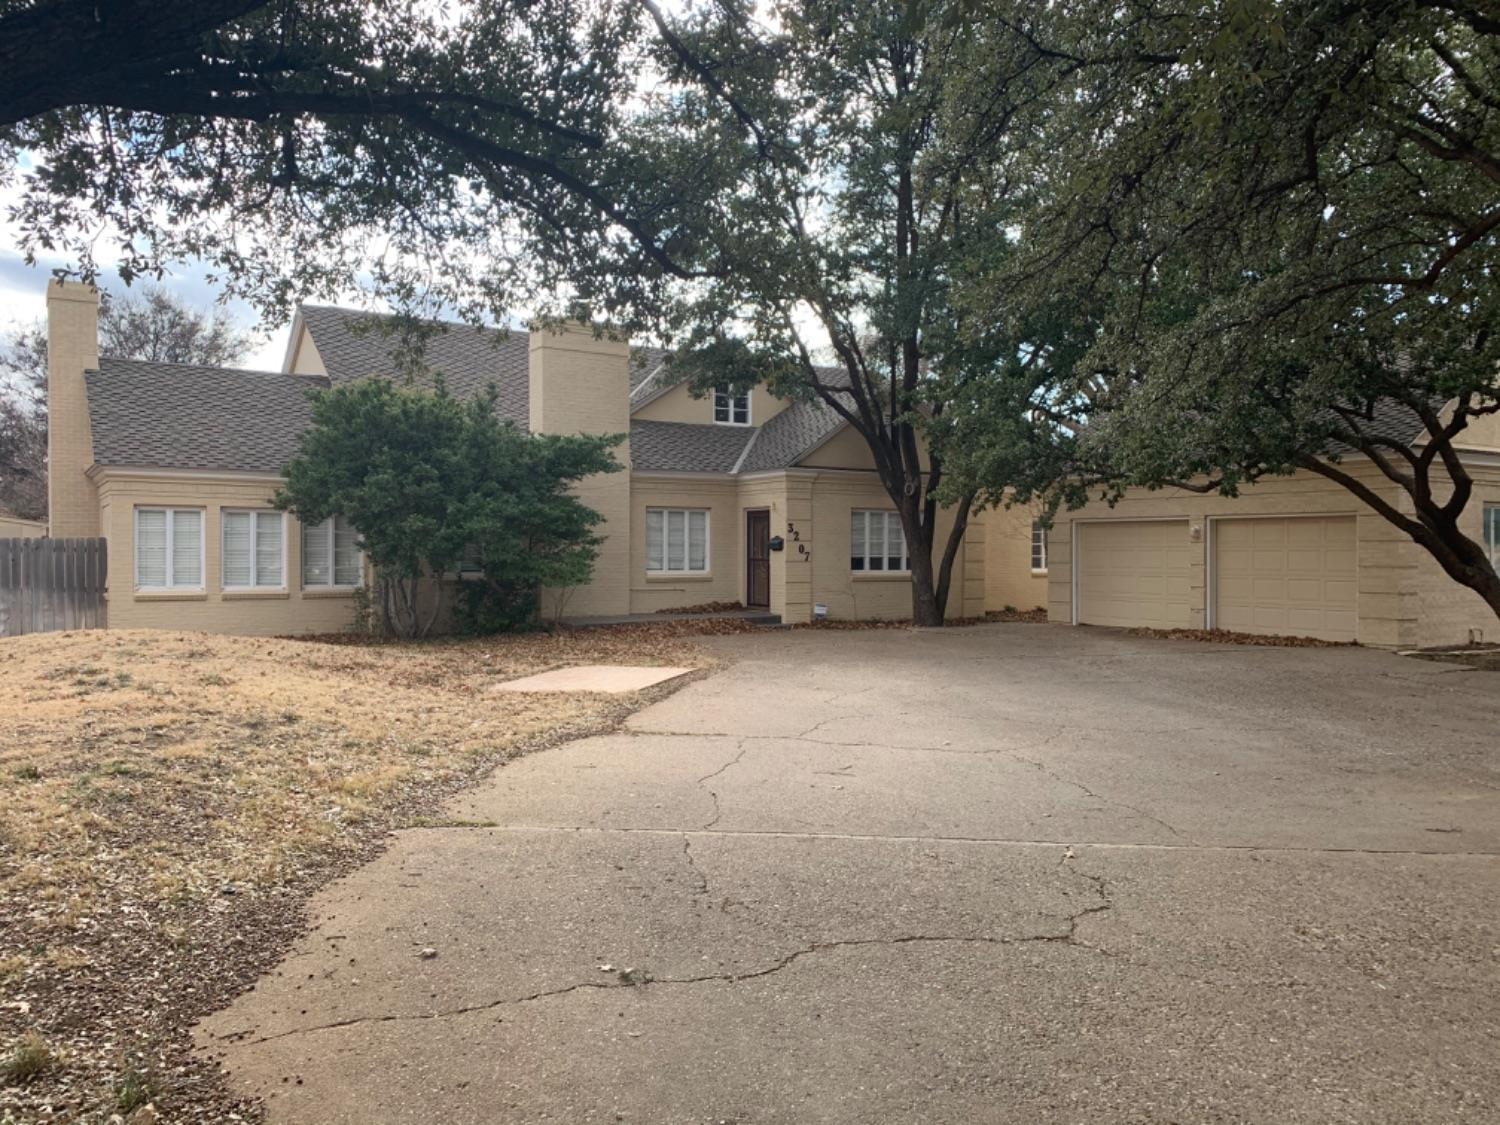 This is a great two story 4 bed 3 bath home on 19th St, across from Texas Tech. The home has a great lay out and lots of charm. Spiral stair case, hard wood floors, balcony over looking a huge great room and more.